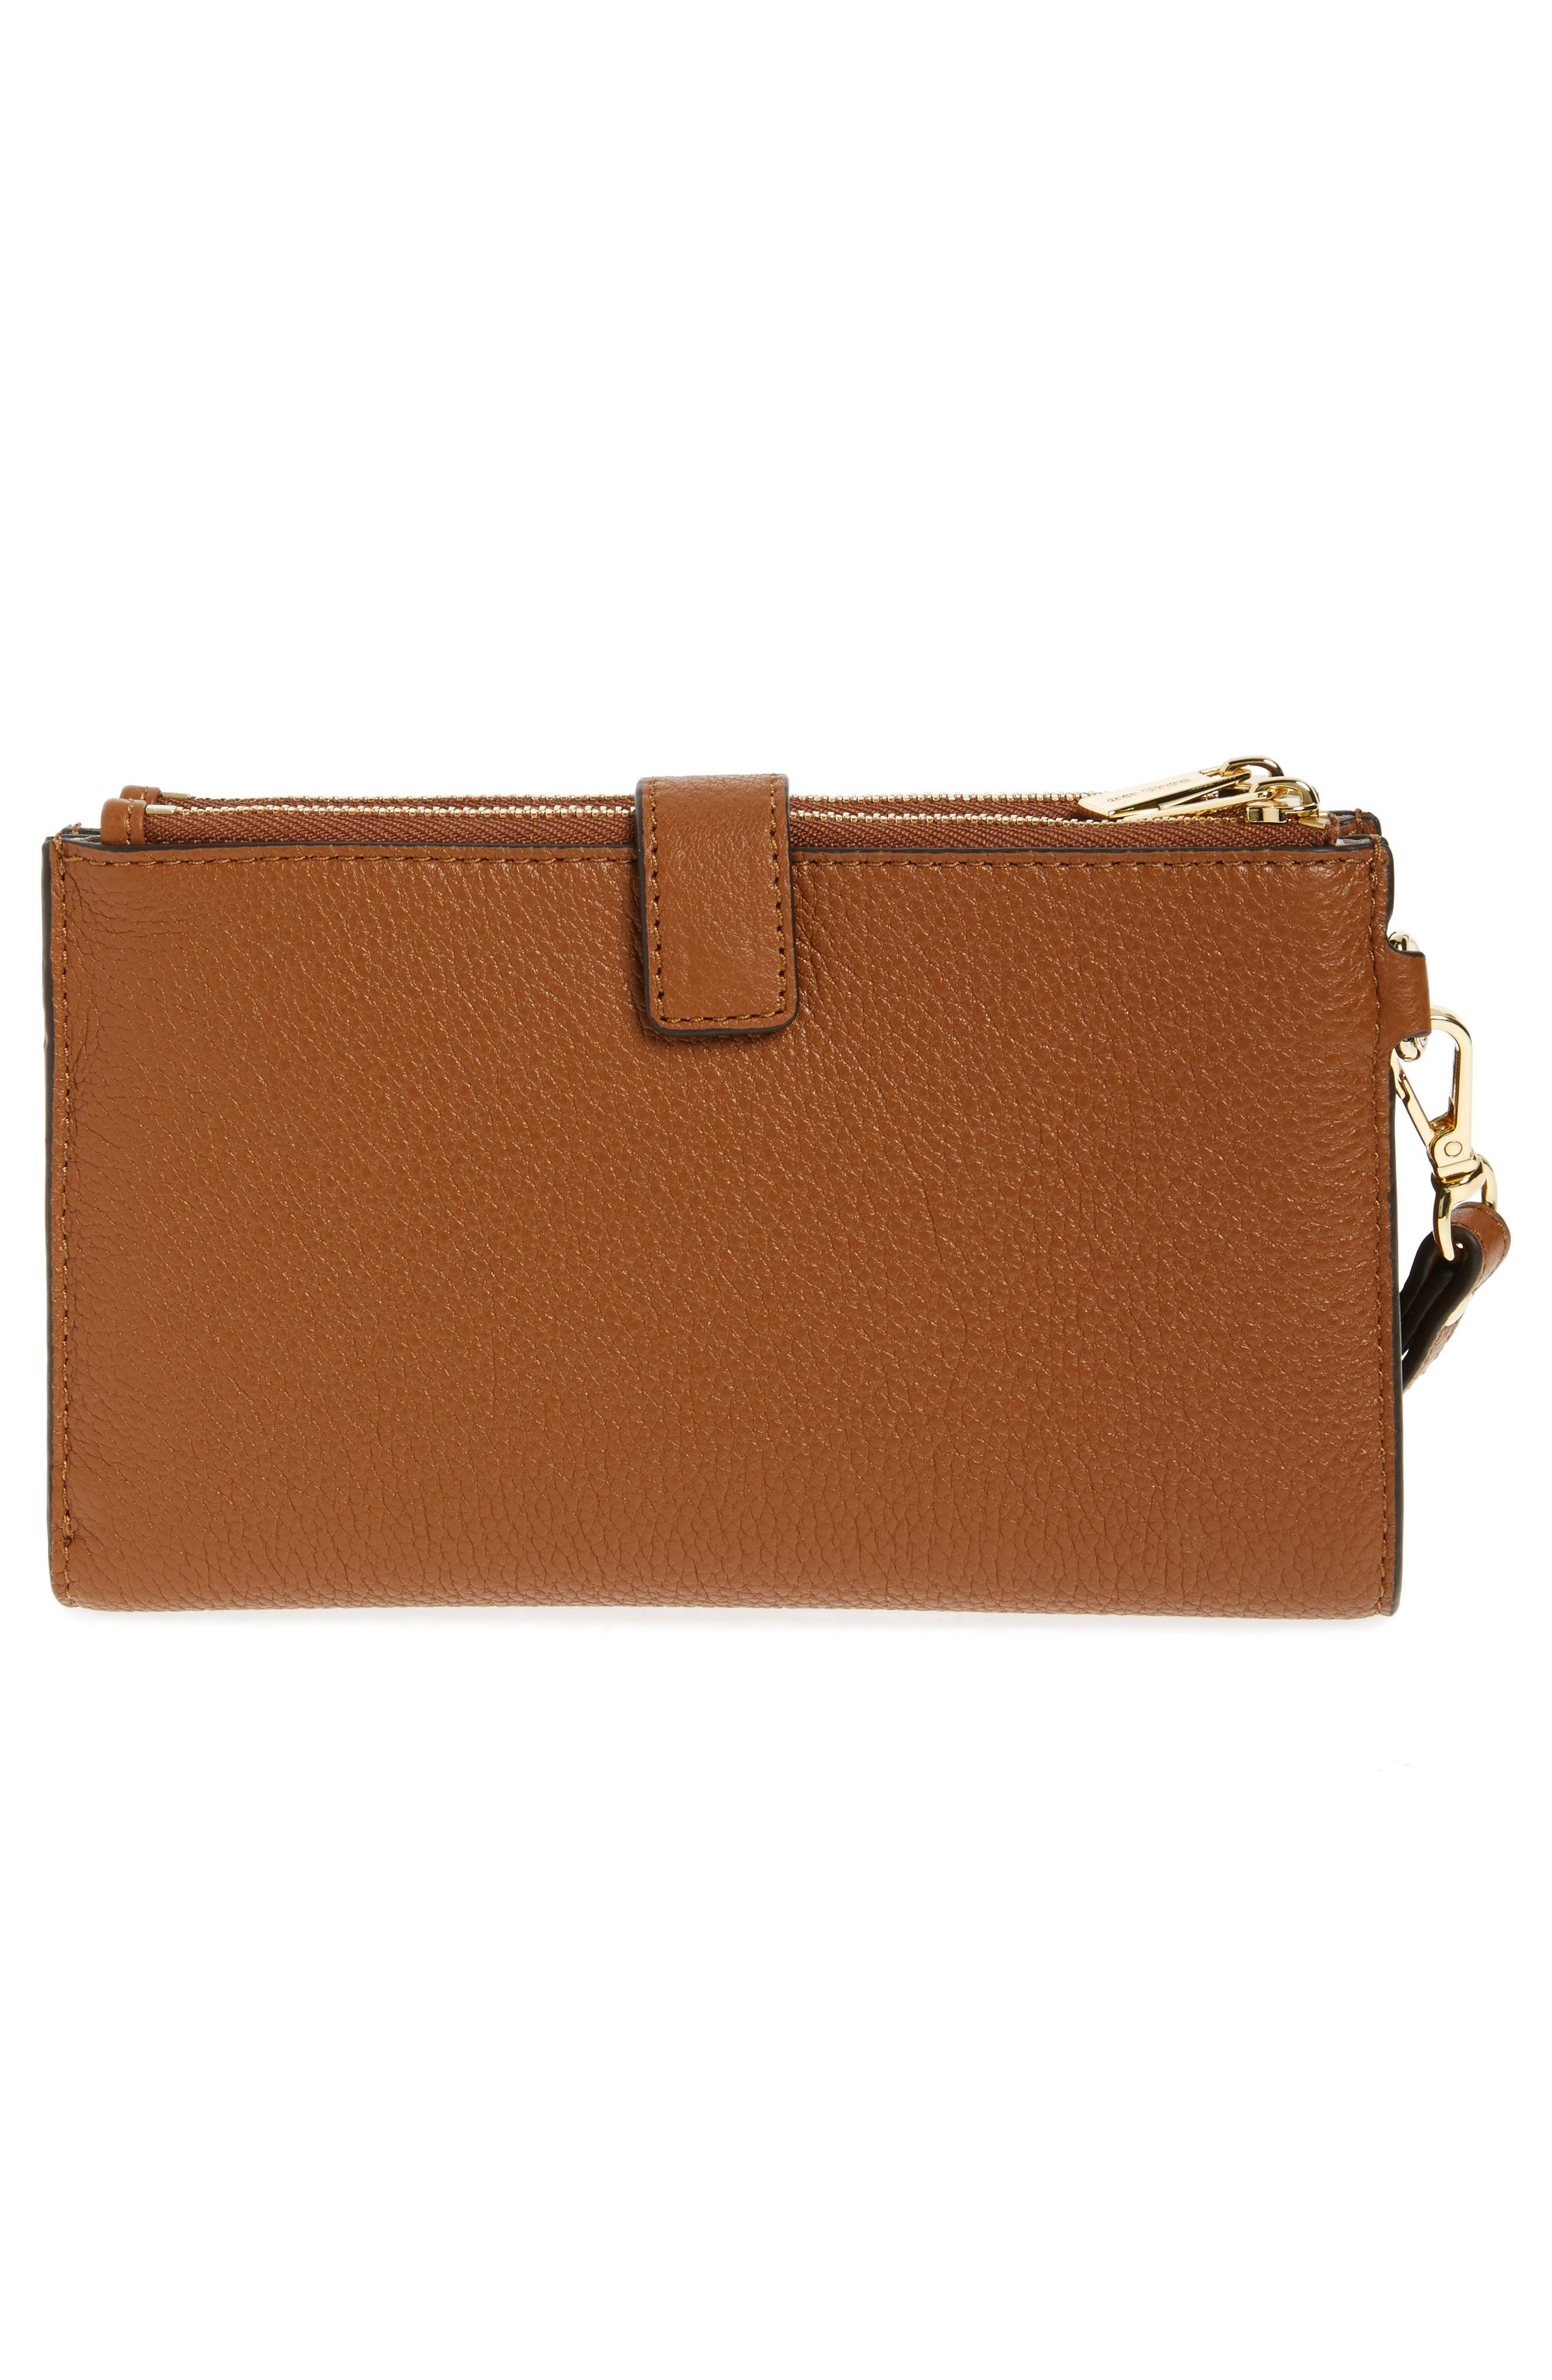 Adele Leather Wristlet,                             Alternate thumbnail 37, color,